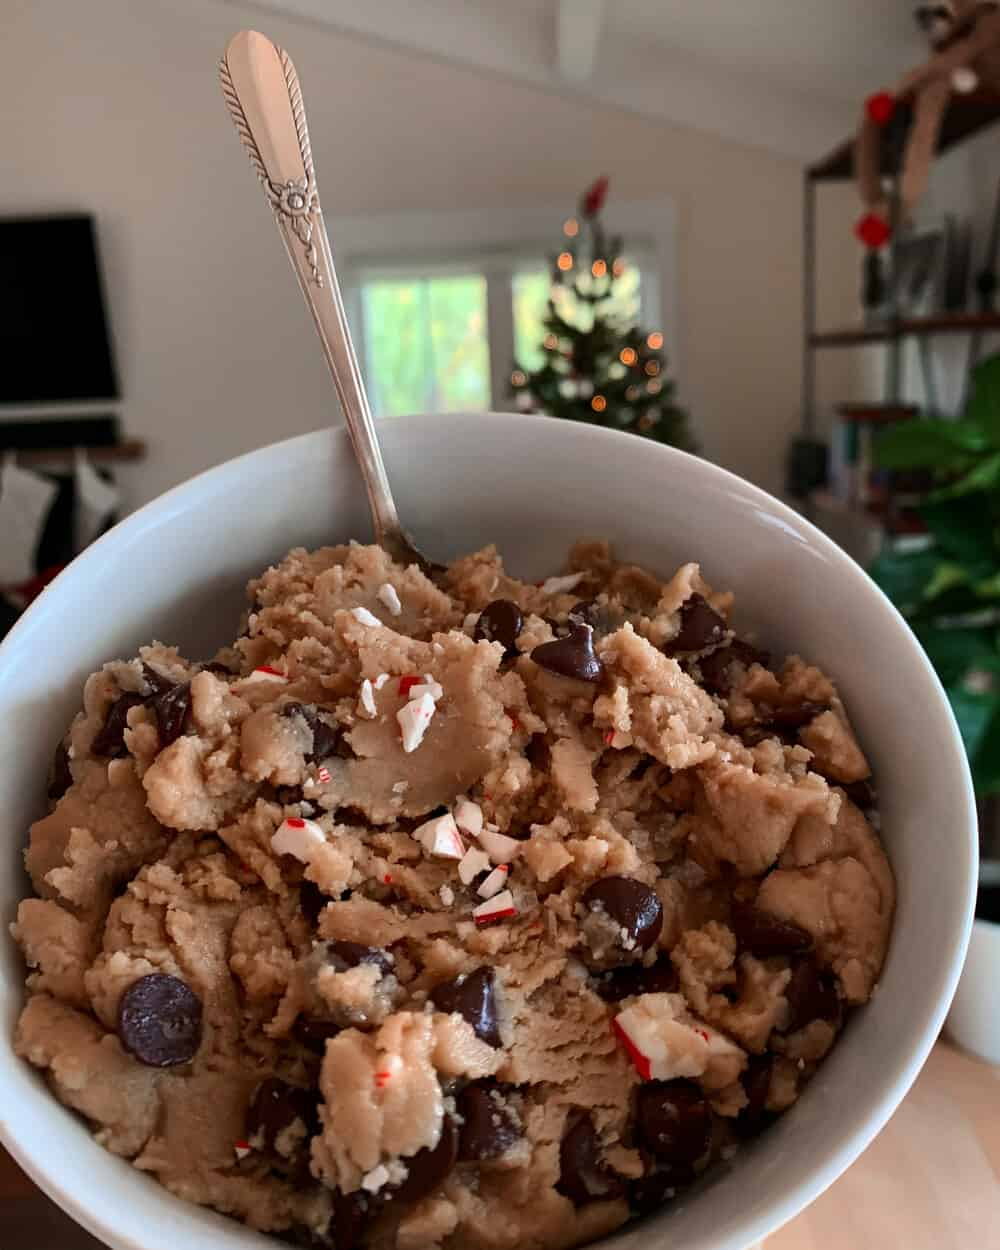 PEPPERMINT TAHINI CHOCOLATE CHIP COOKIE DOUGH - INGREDIENTS1 cup almond flour1 cup Soom Foods Tahini1/2 cup maple syrup1 flax egg (1 tb ground flax + 3 tb water)1 scoop collagen peptides (optional)1 tsp baking soda1 cup dairy free chocolate chips1 tsp peppermint extract1 crushed candy cane